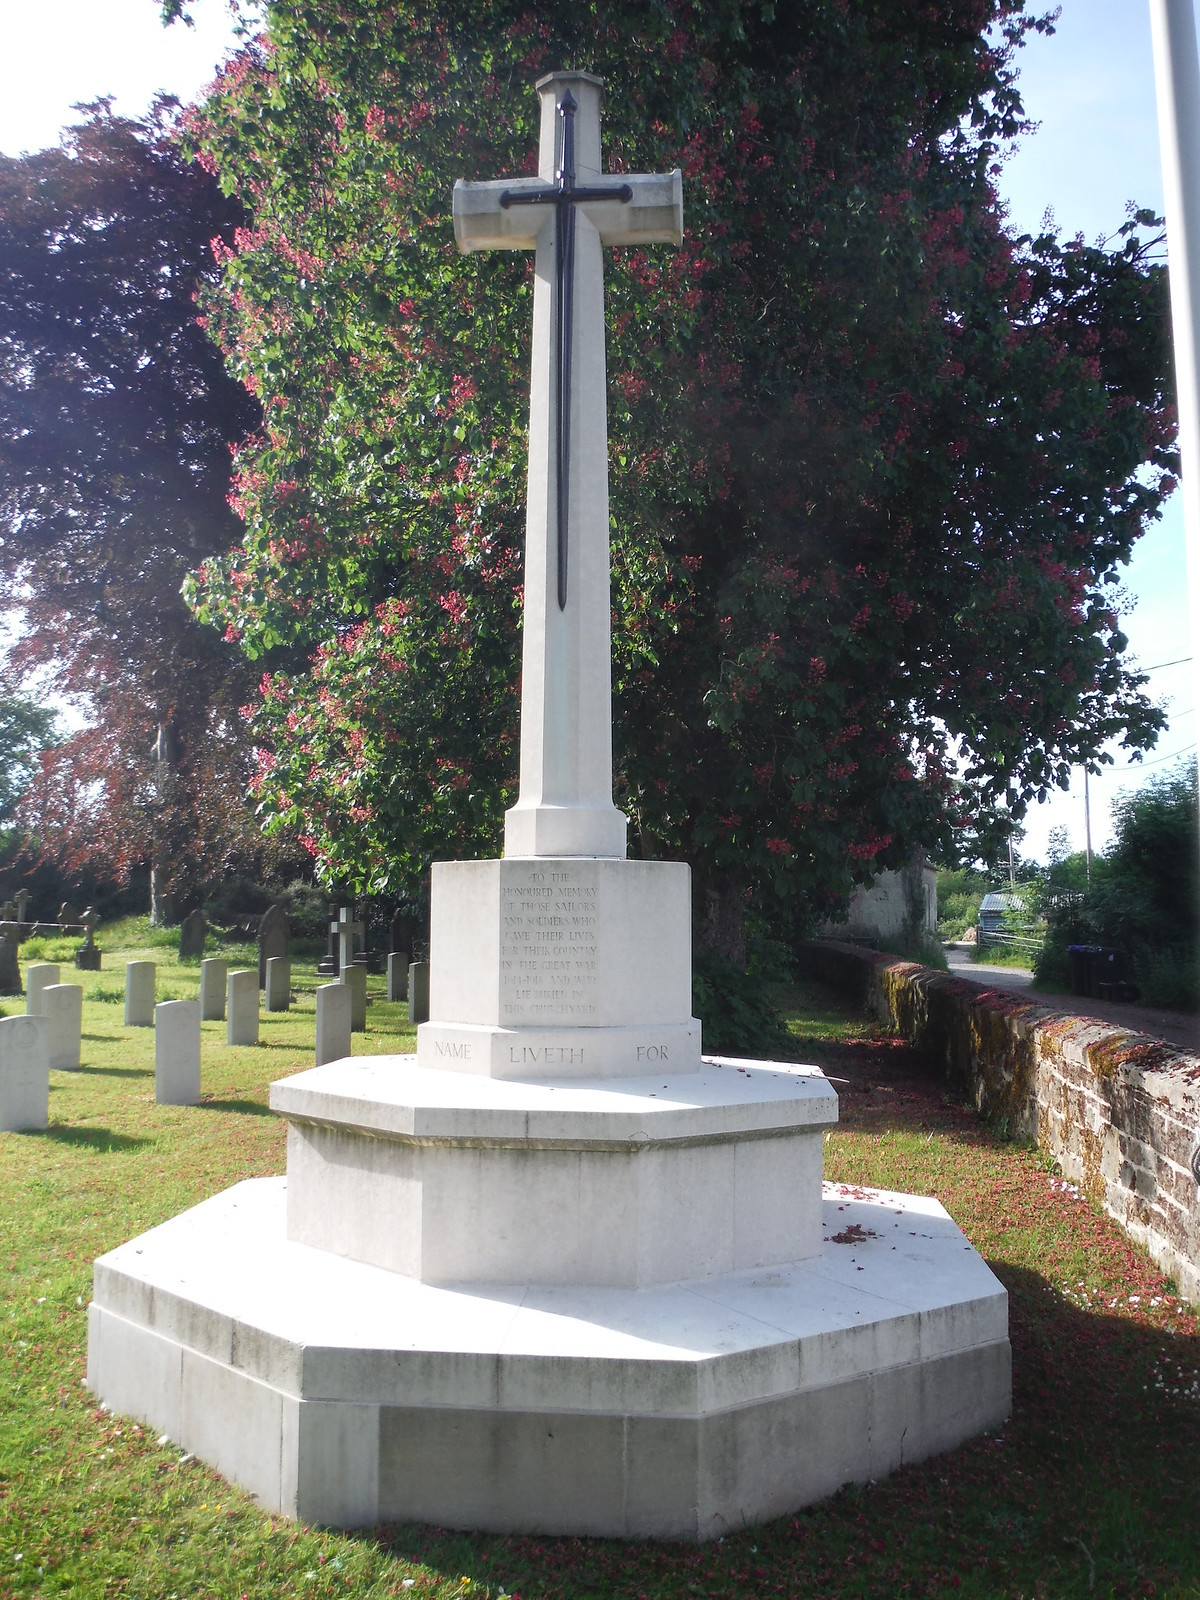 WWI graves and War Memorial at Fovant Church SWC Walk 249 Tisbury Circular via Dinton and Fovant